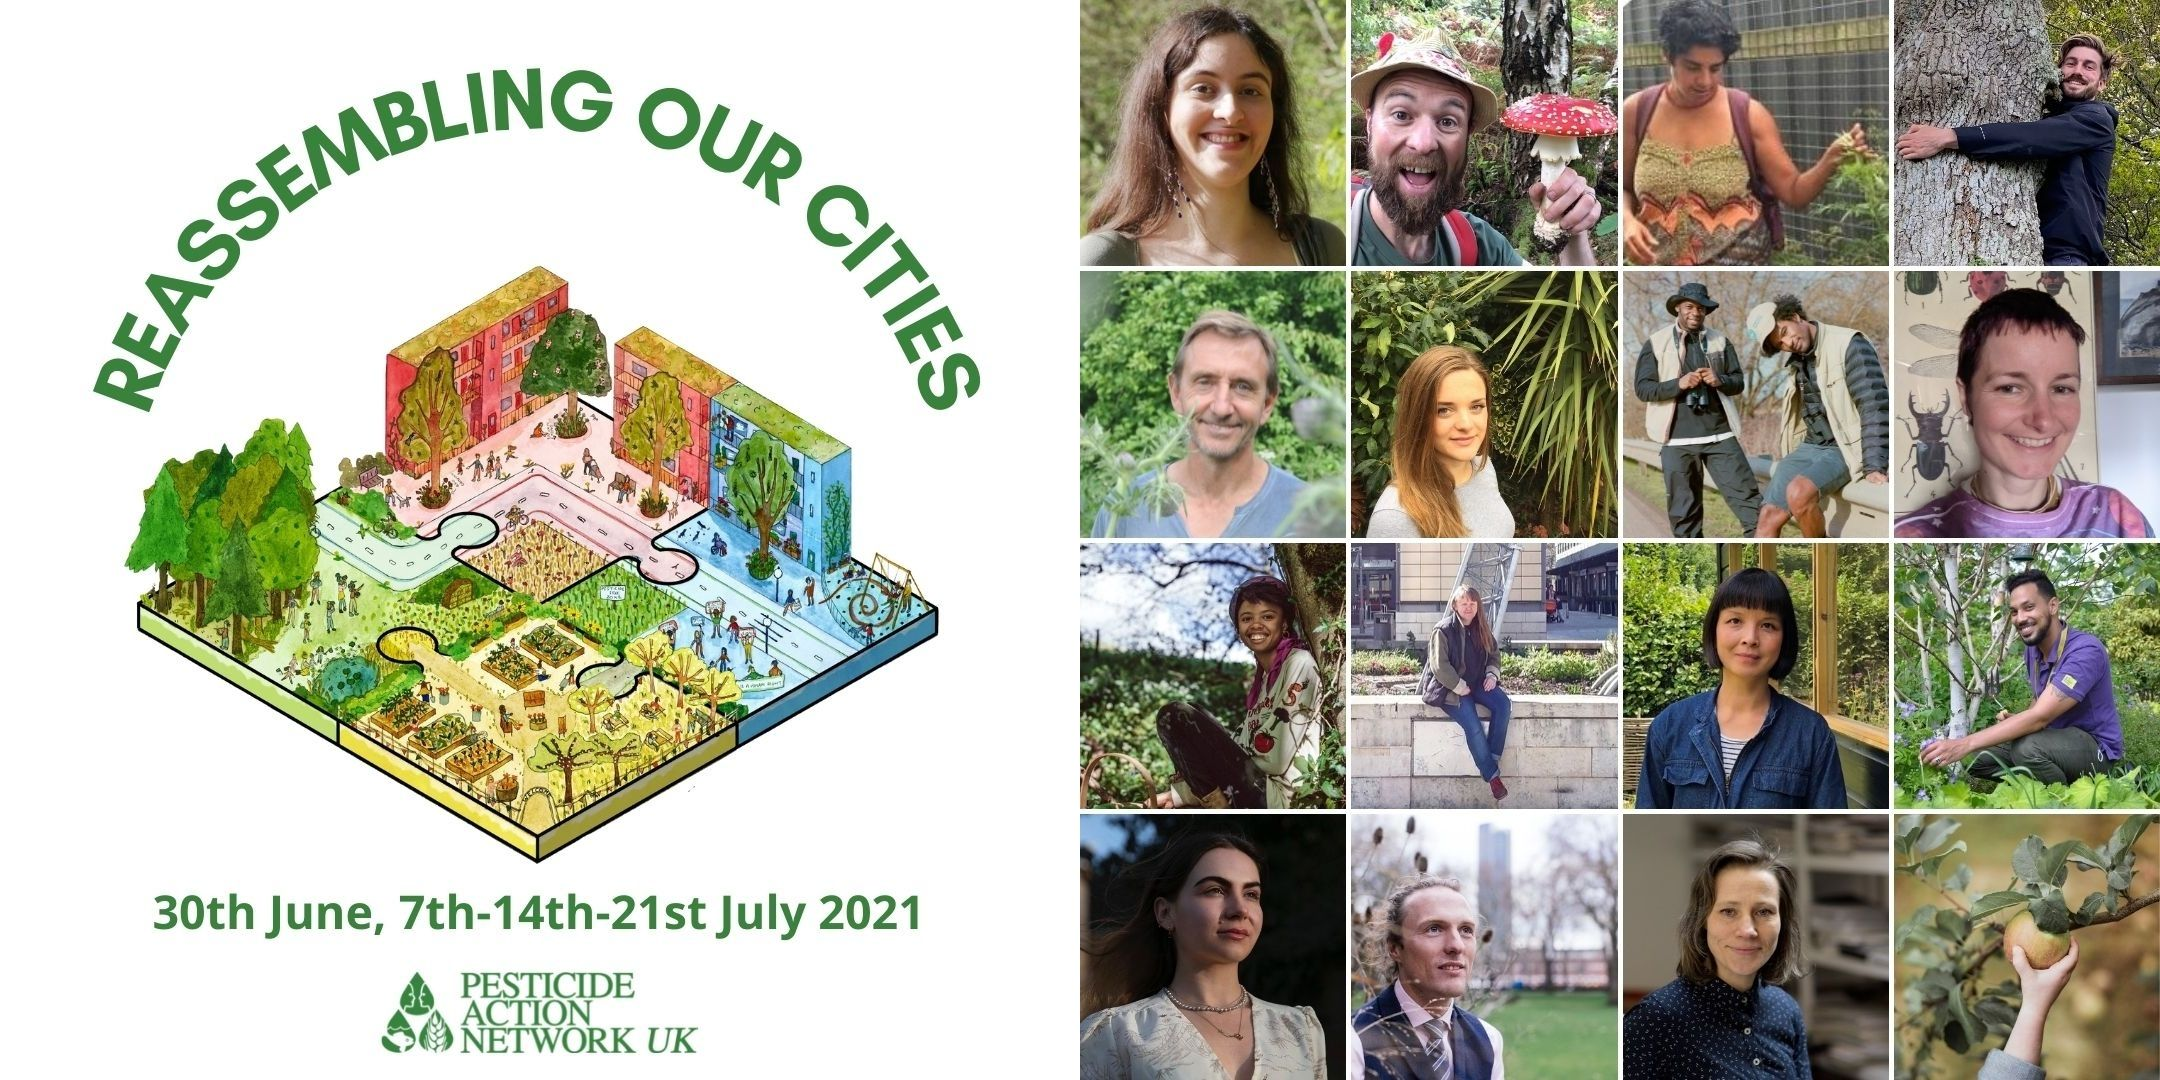 Register for our free online event: Reassembling Our Cities